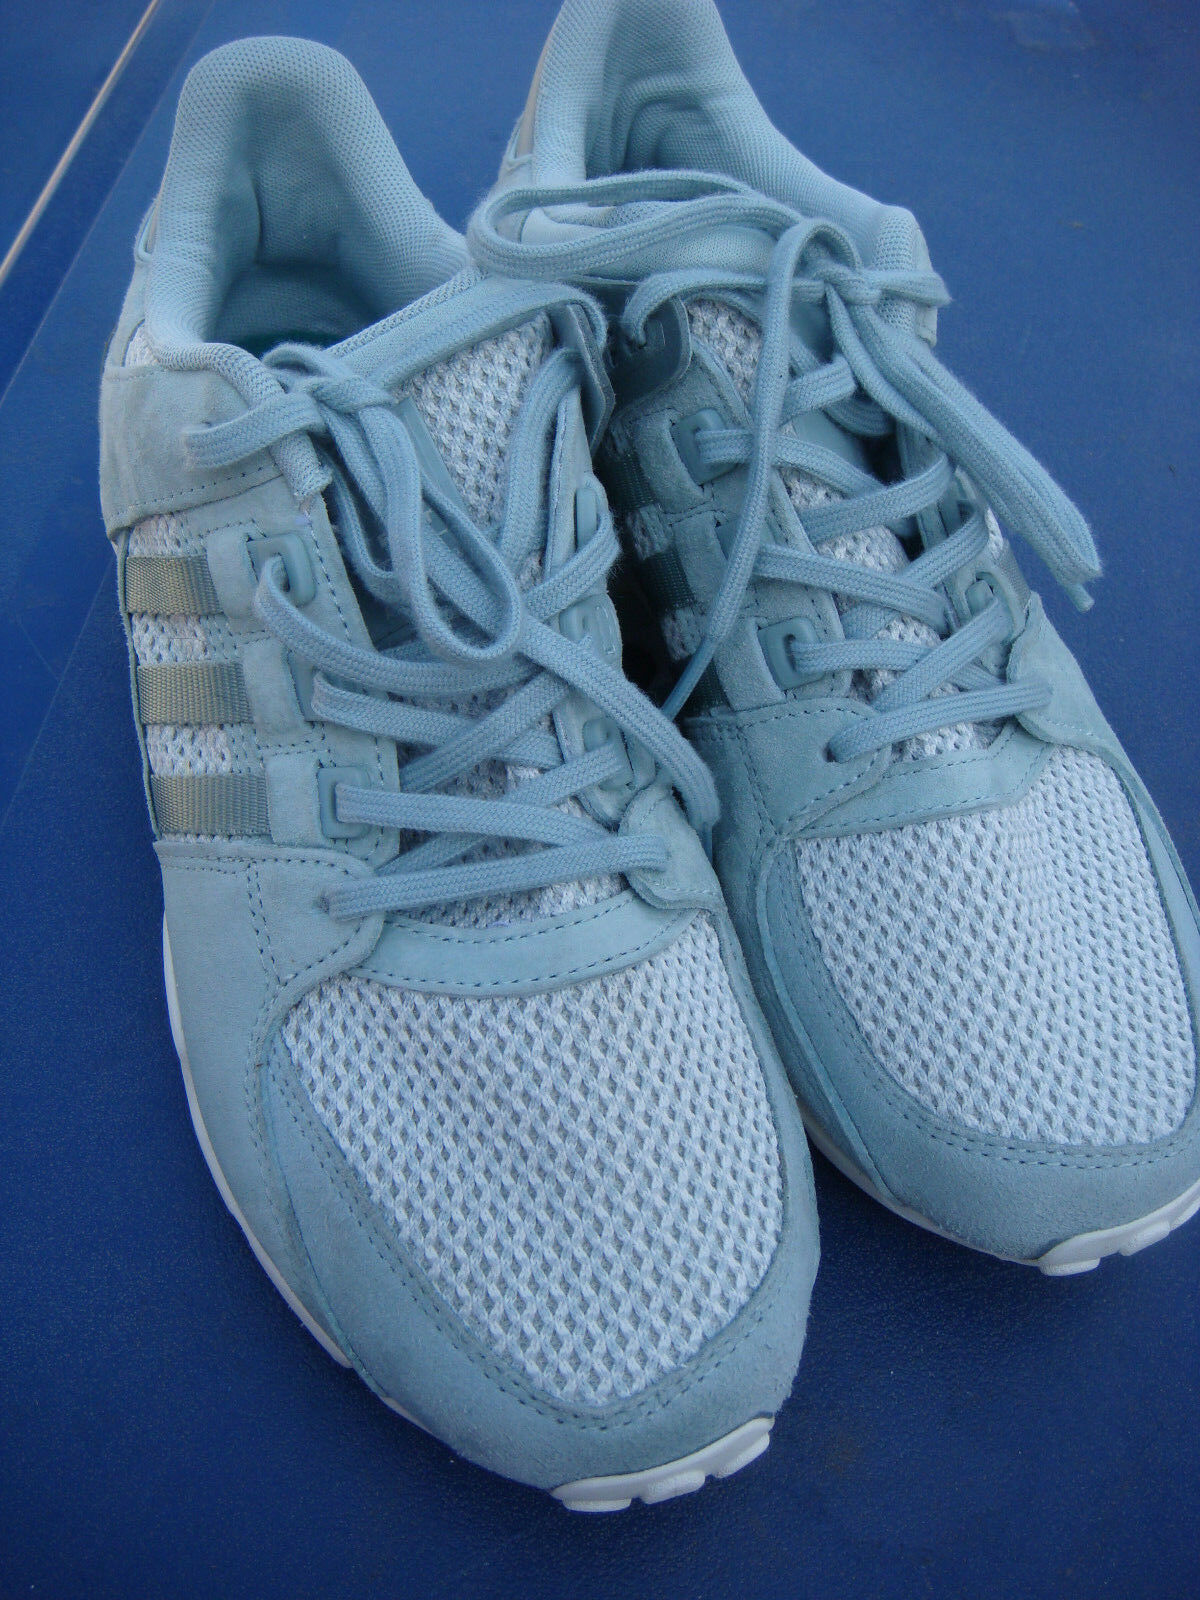 ADIDAS TORSION WOMEN'S RUNNING SHOES SIZE 7 NEW WITHOUT TAGS SEAFOAM